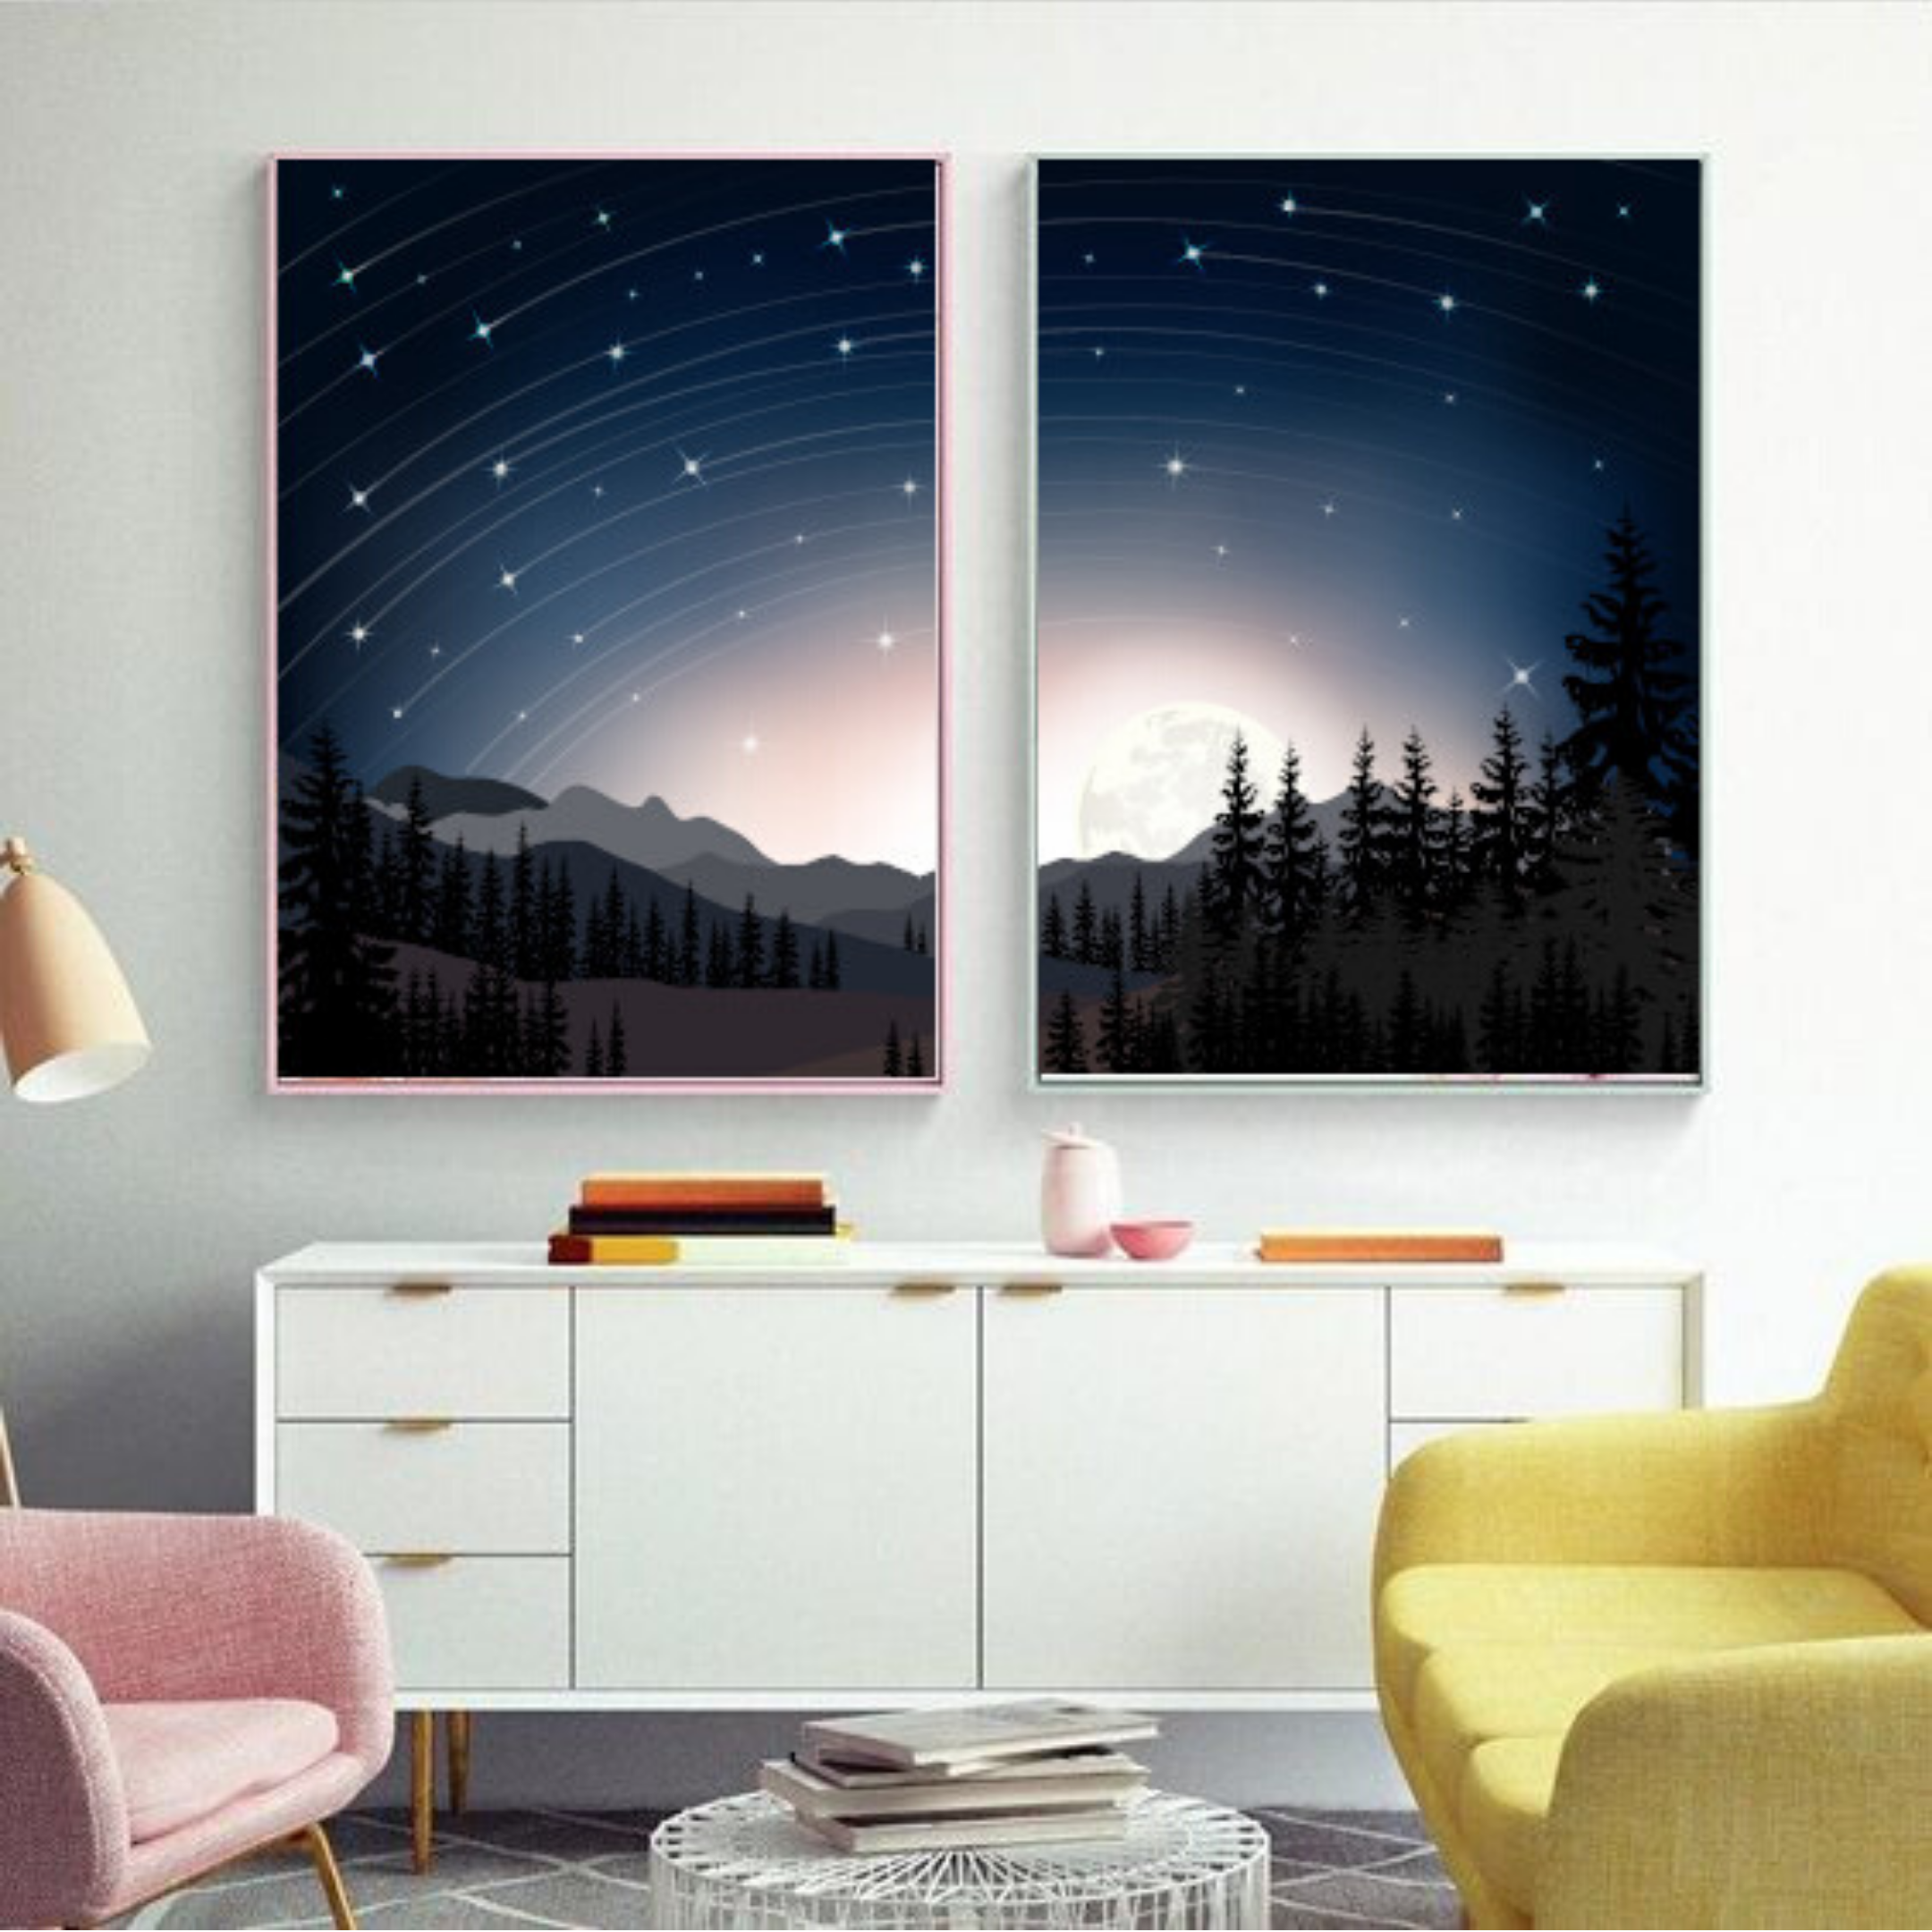 Printed Posters Set Of 3 Wall Decor Gift Large Formats London In 2020 Large Wall Decor Living Room Wall Posters Bedroom Kid Room Decor